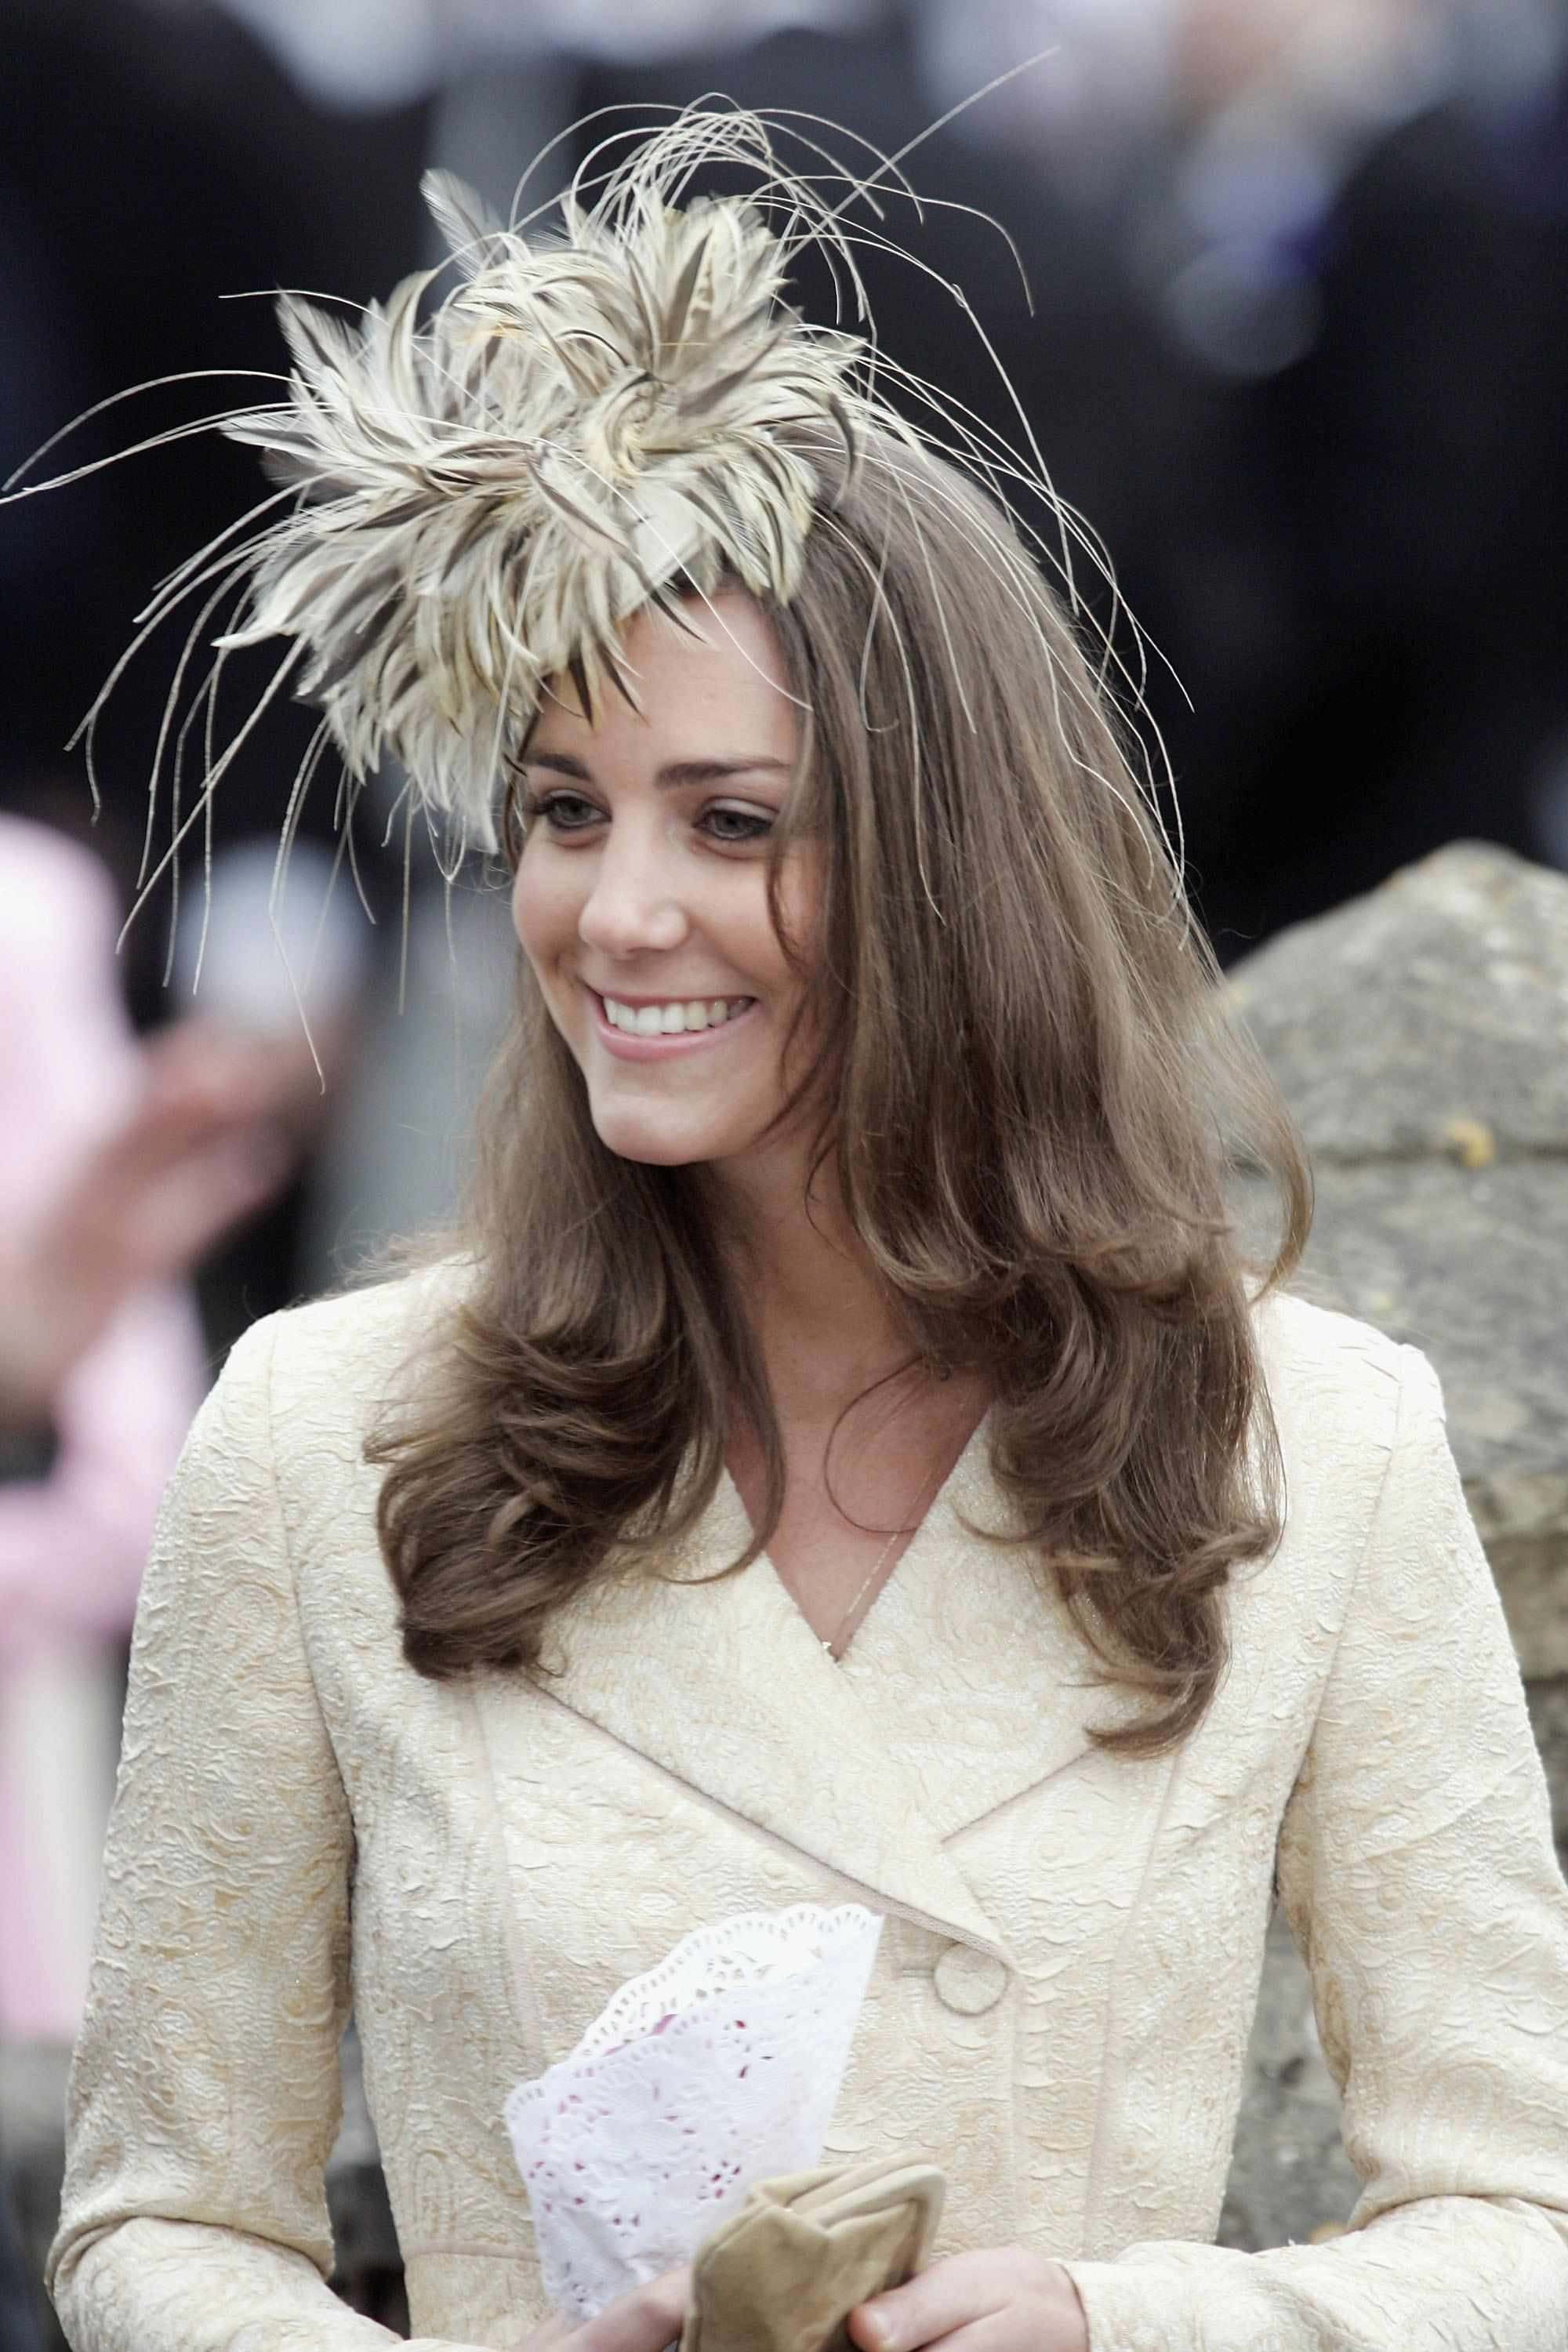 Kate Middletonatthe wedding of Laura Parker-Bowles and Harry Lopeson May 6, 2006, in Wiltshire, England | Photo:Tim Graham Photo Library/Getty Images